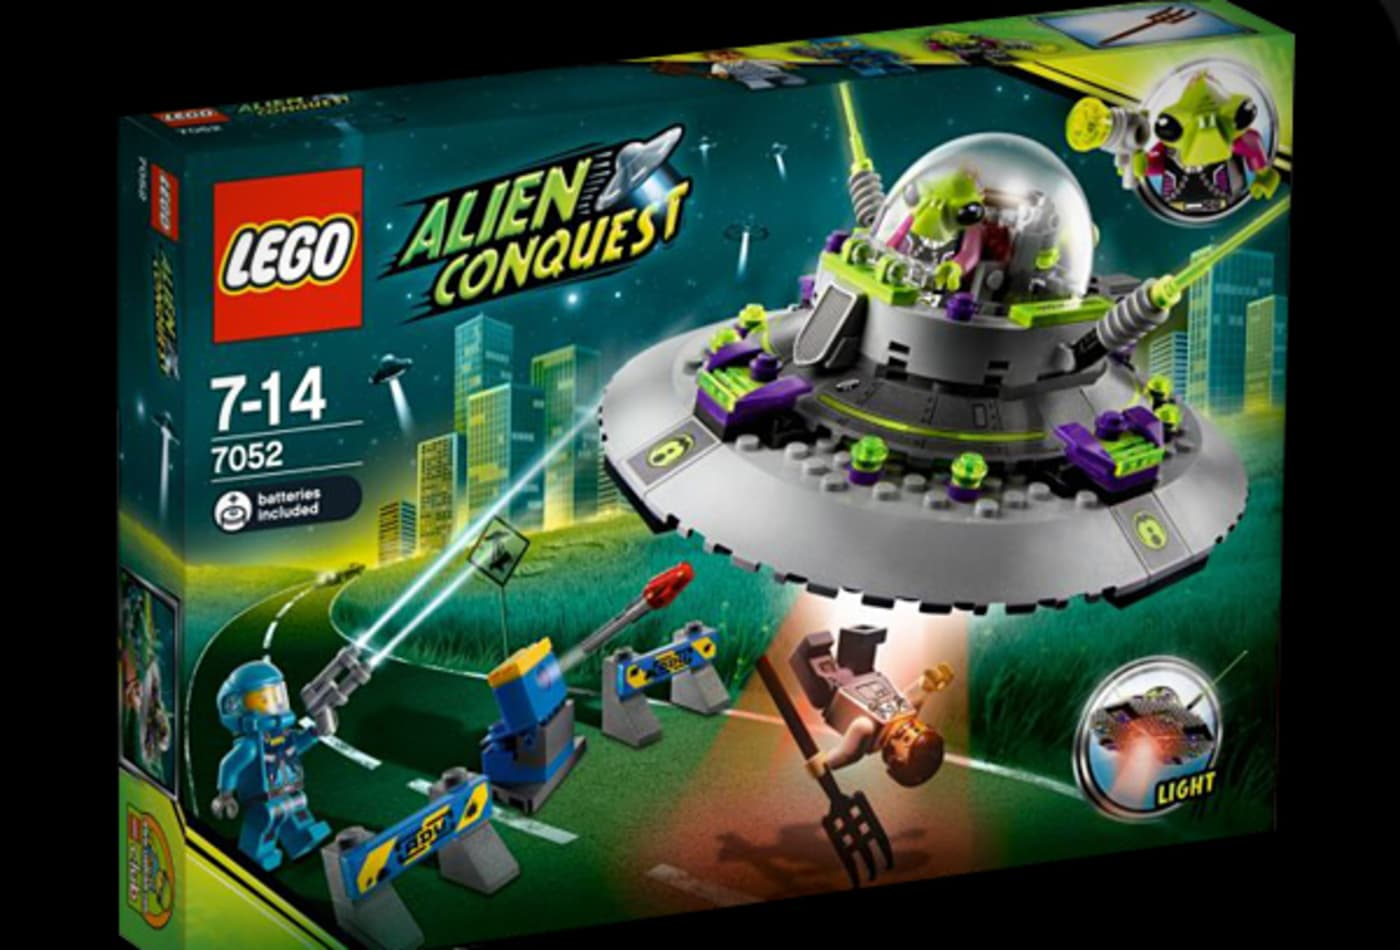 CNBC-toys-alien-conquest-600.jpg